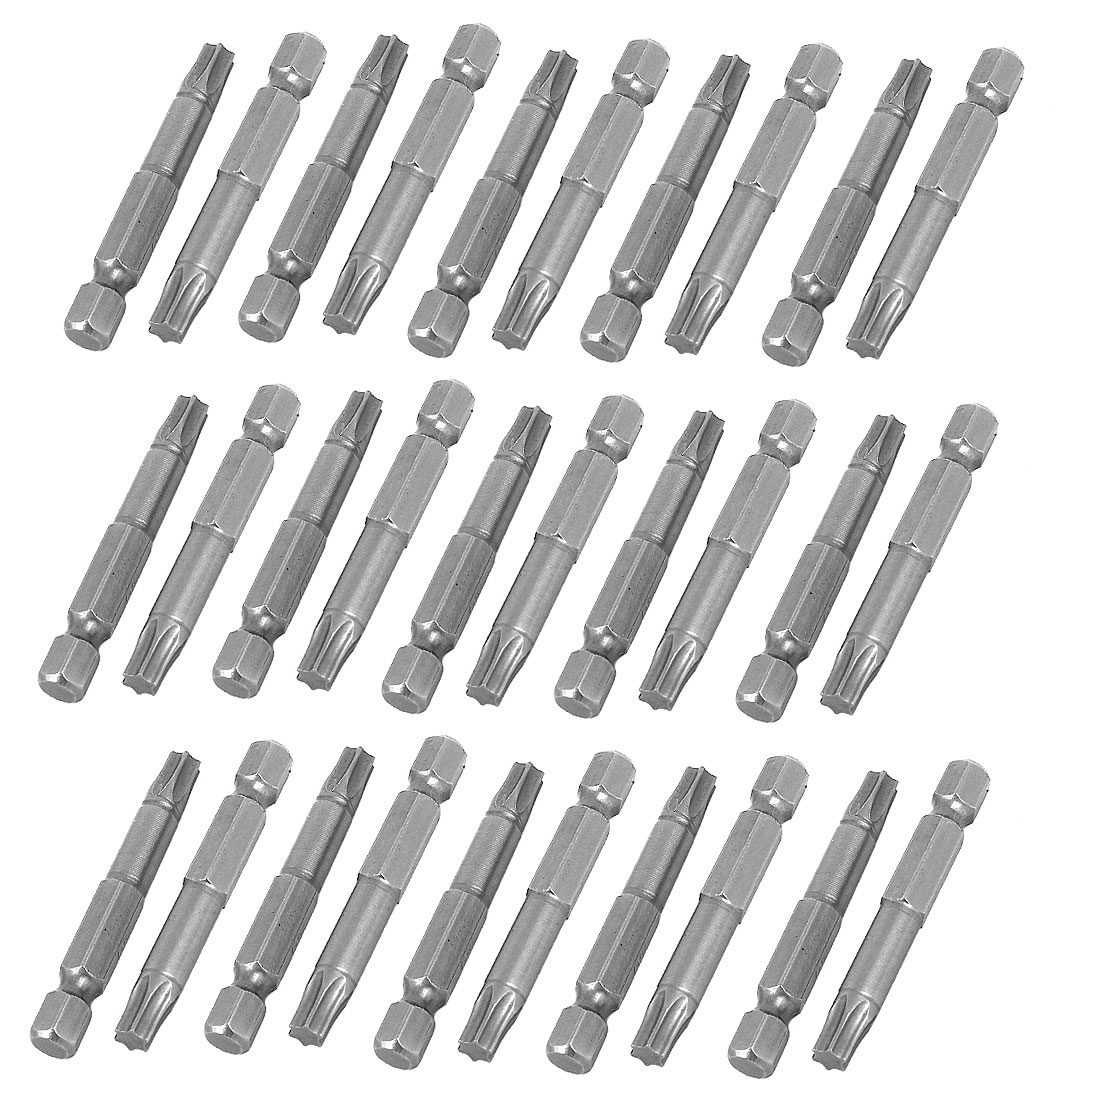 "T30 Head 1/4"" Dia Hex Shank Magnetic Torx Screwdriver Bits Gray 30pcs"